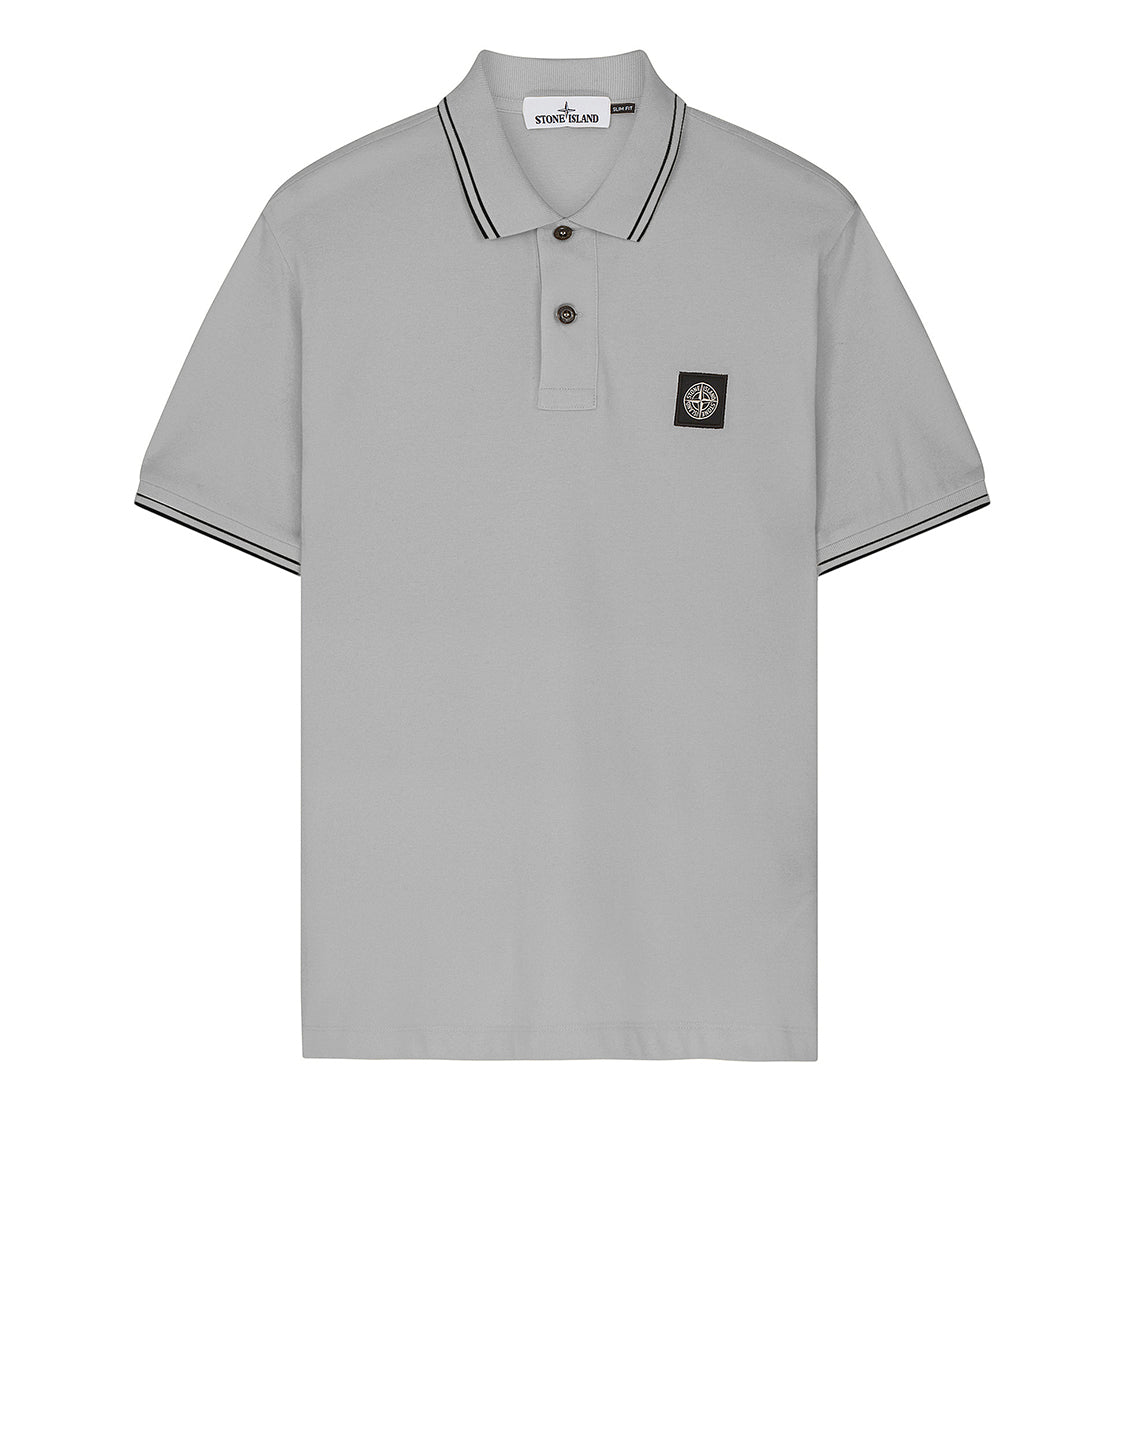 22S18 Short Sleeve Polo Shirt in Pearl Grey